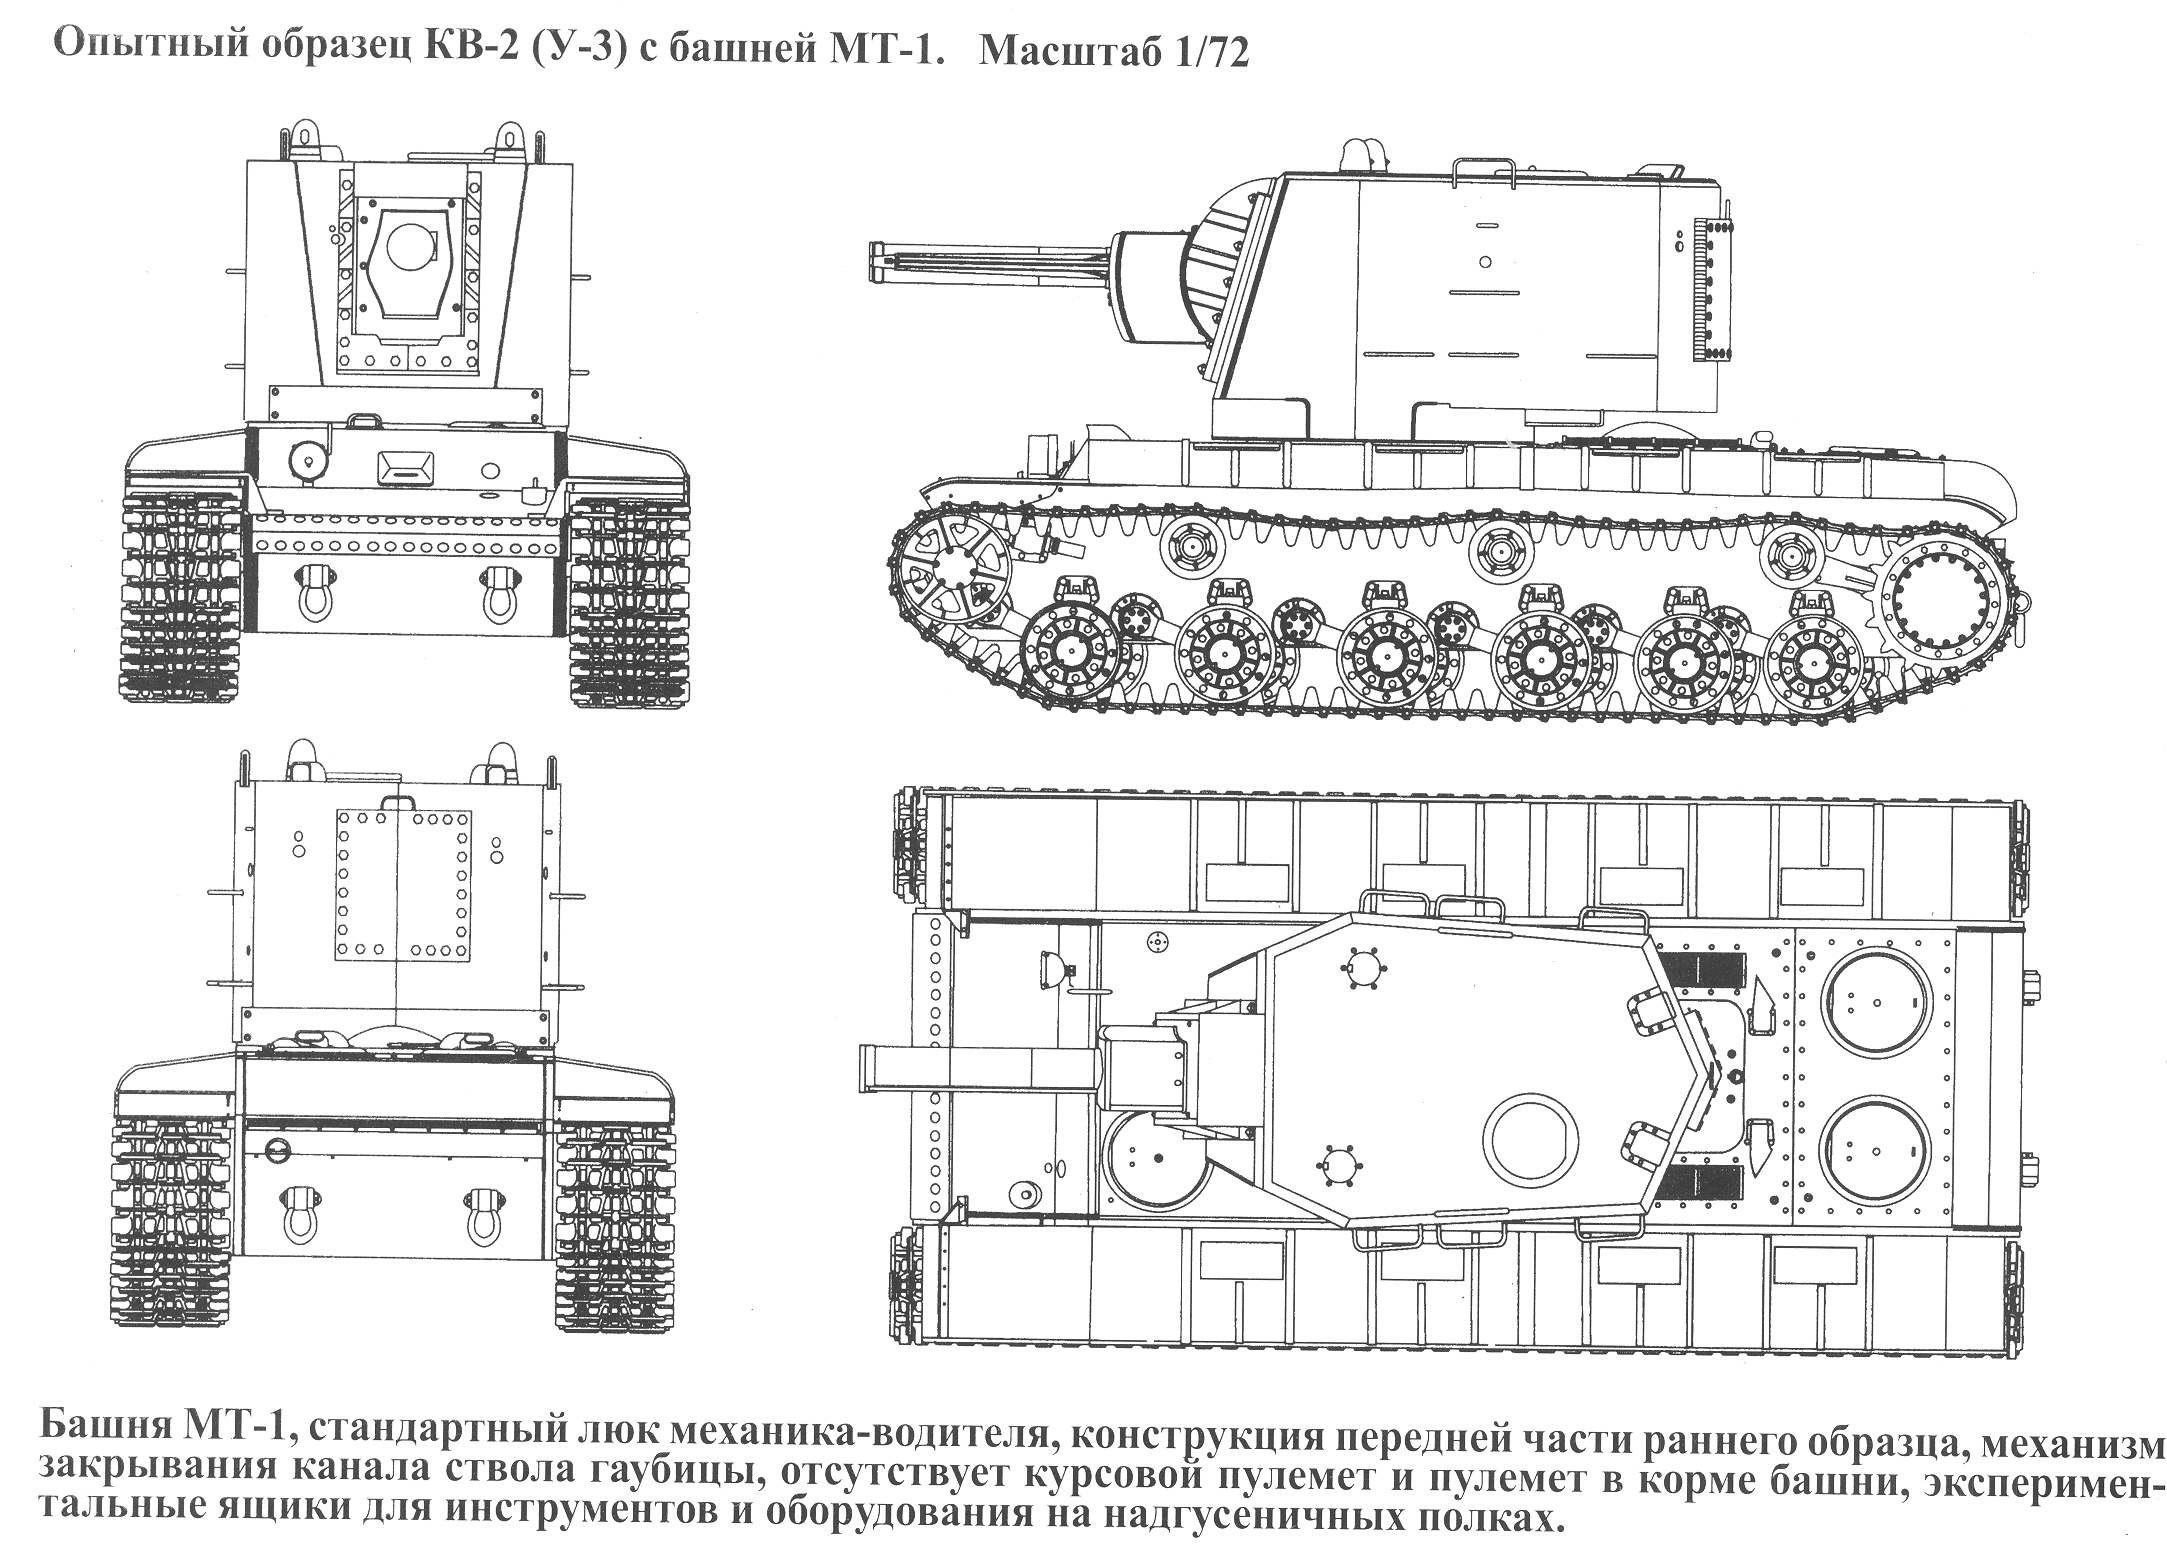 engine diagram with Soviet Kv 2 on Zero Point The Story Of Mark Mccandlish And The The Fluxliner Ssp together with Vw Golf Getting New Ultra Economic Petrol Engine furthermore Diagram Brakes Rear also Cutaways together with Soviet KV 2.